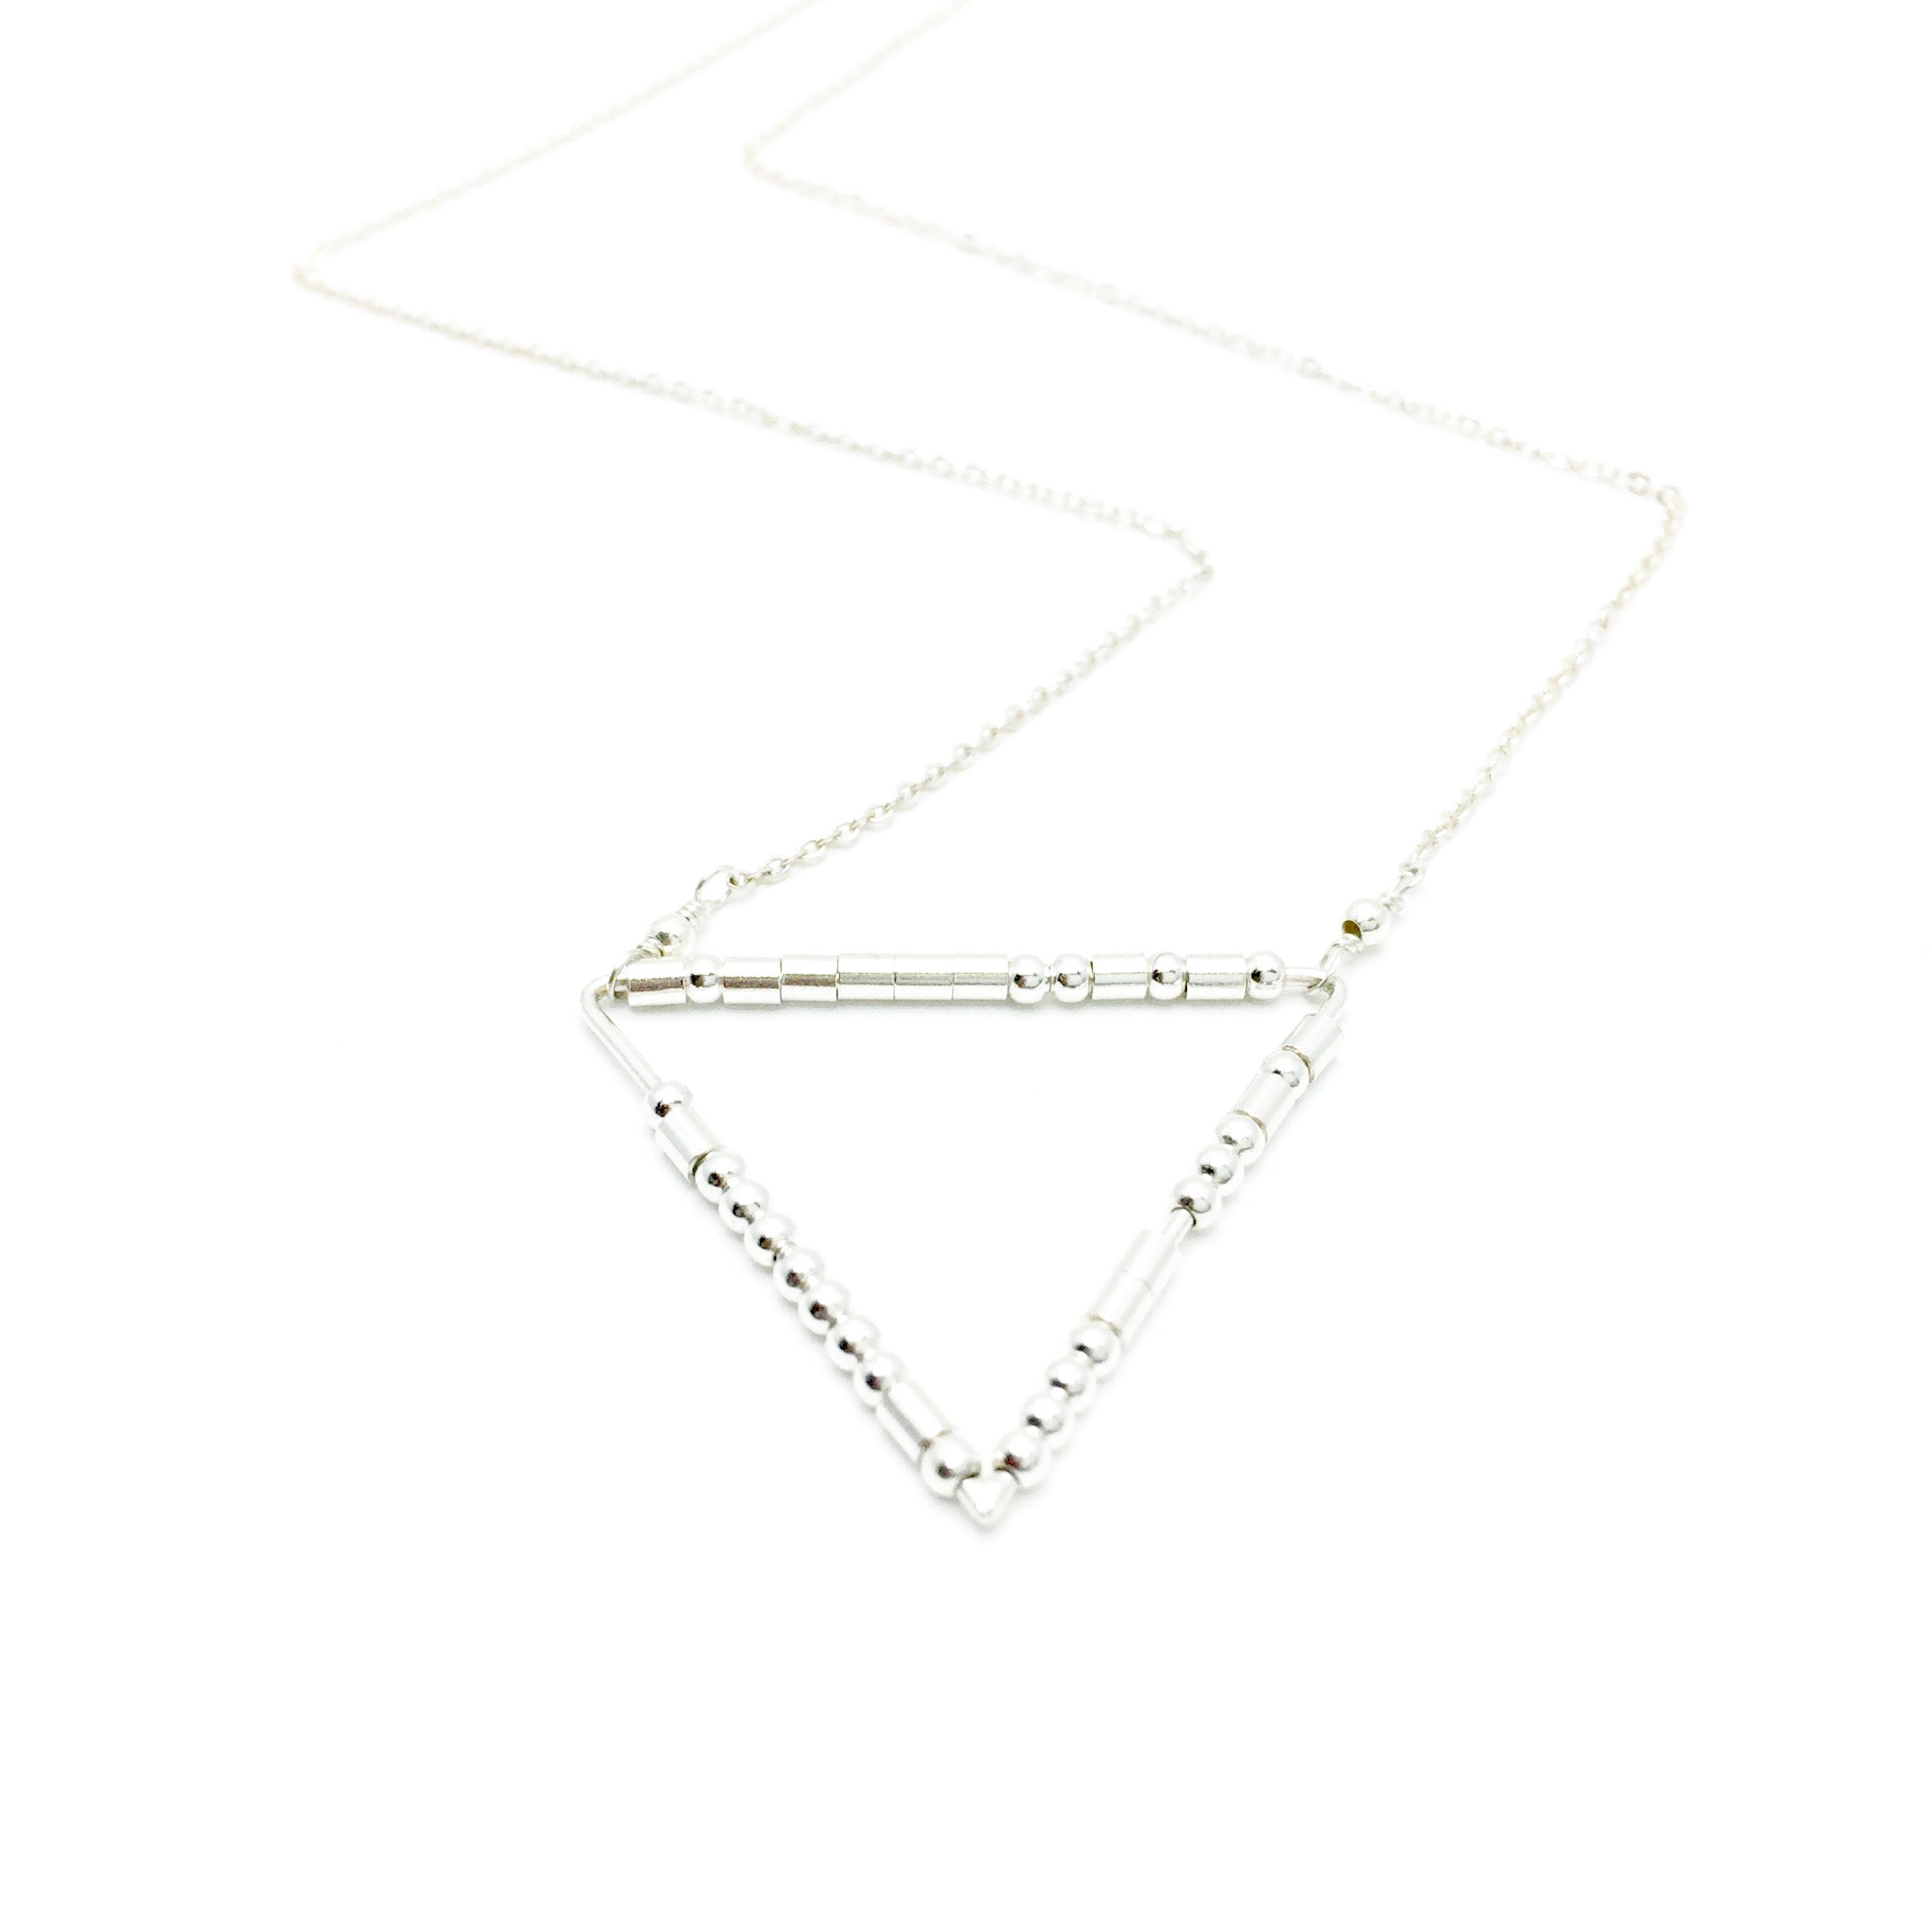 LIVE YOUR TRUTH Morse Code Mantra® Necklace